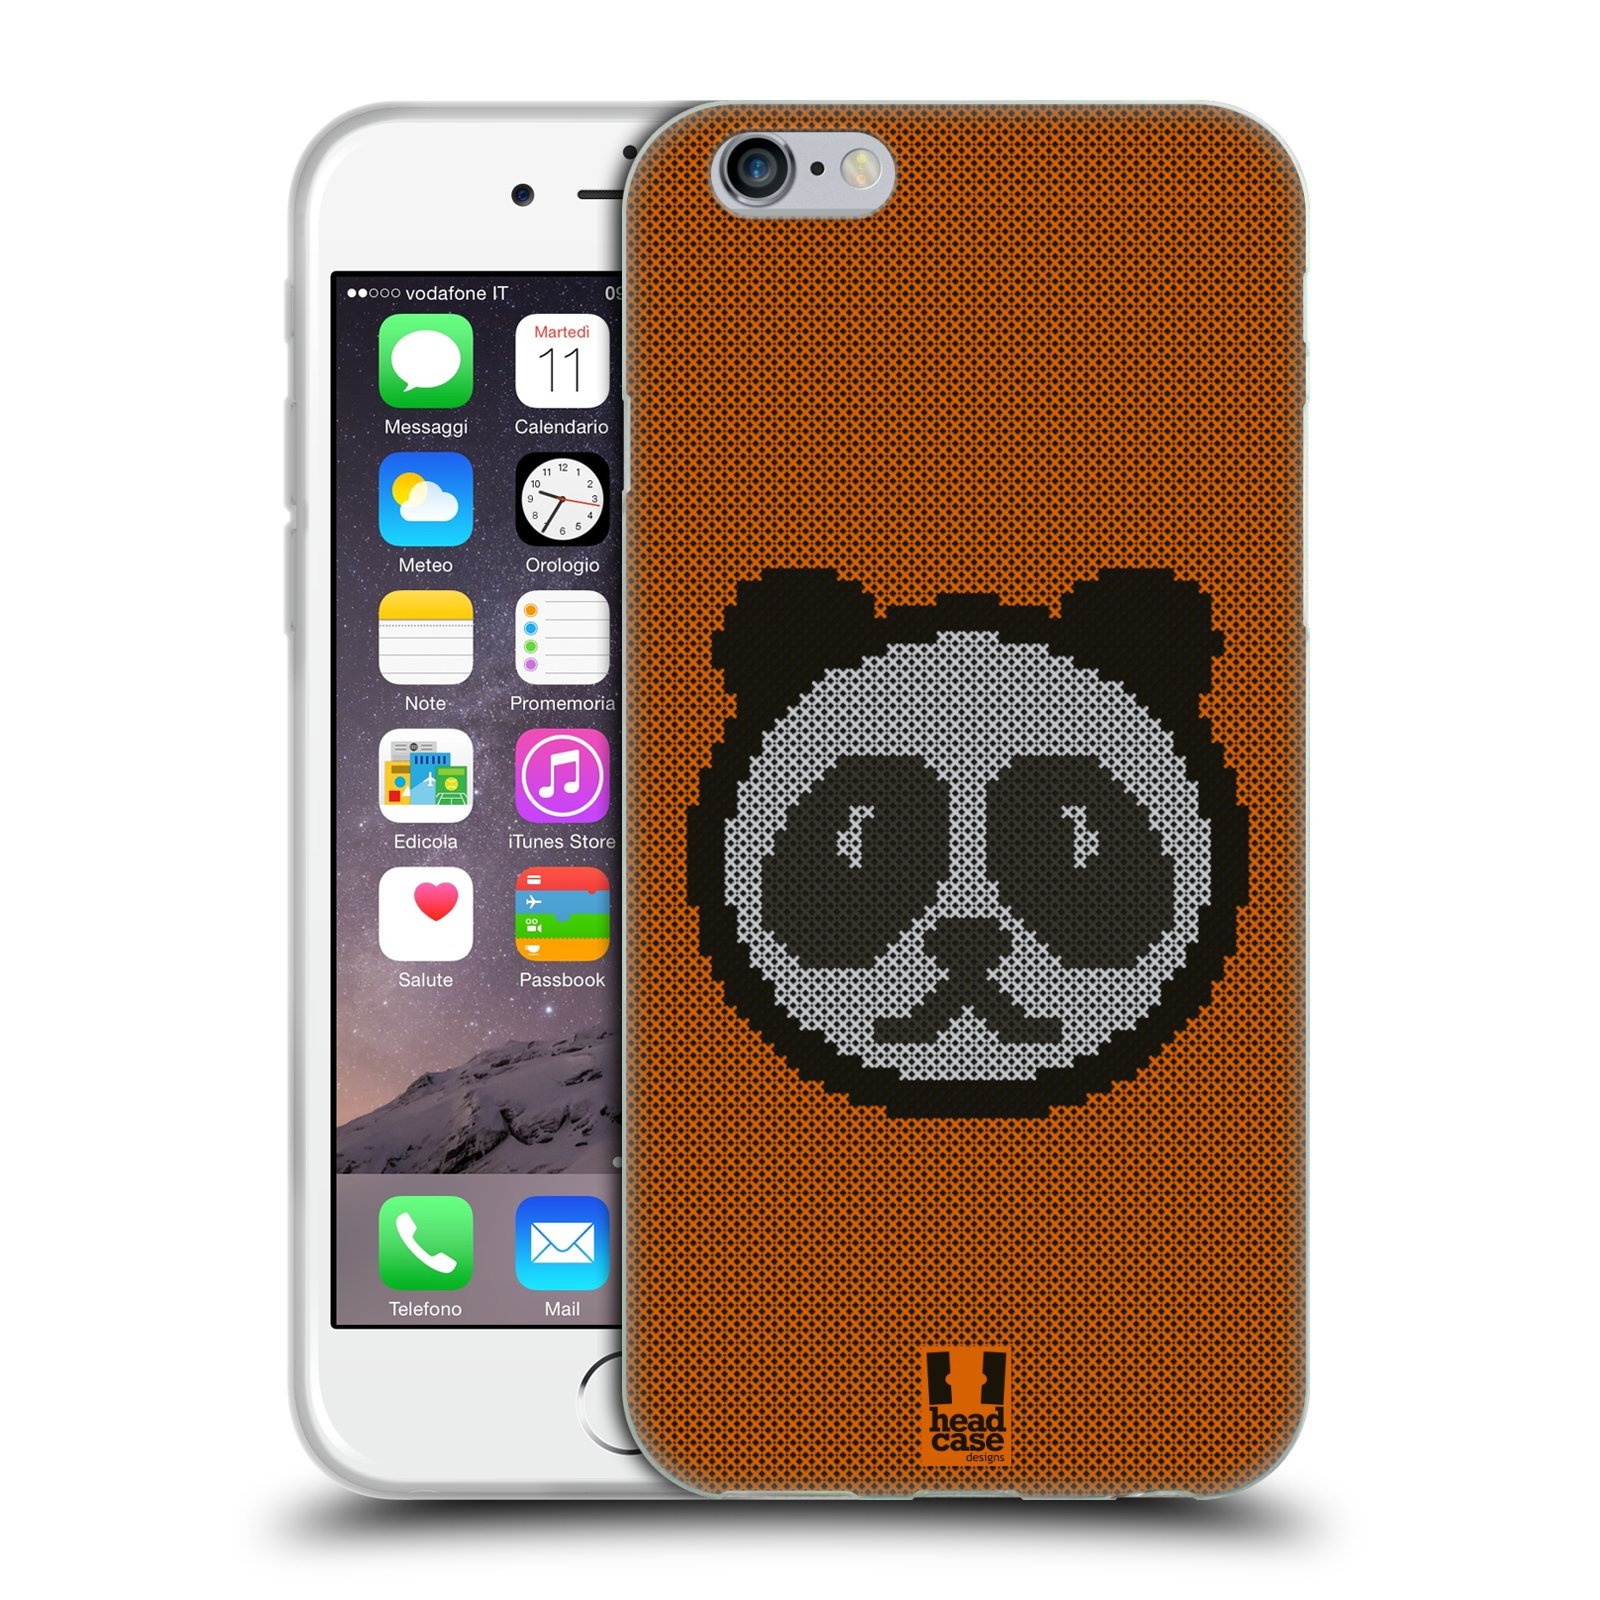 HEAD-CASE-DESIGNS-CROCI-CUCITE-COVER-MORBIDA-IN-GEL-PER-APPLE-iPHONE-TELEFONI